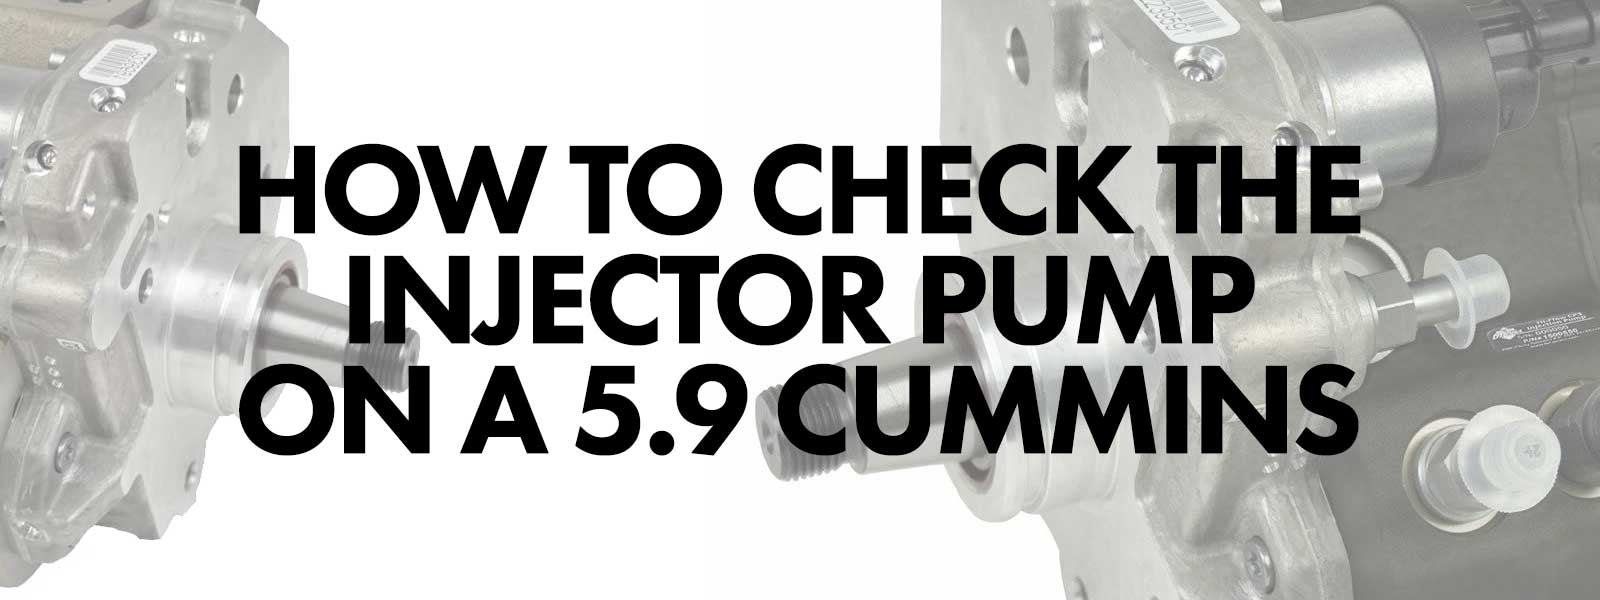 How to Check the Injector Pump on 5.9 Cummins